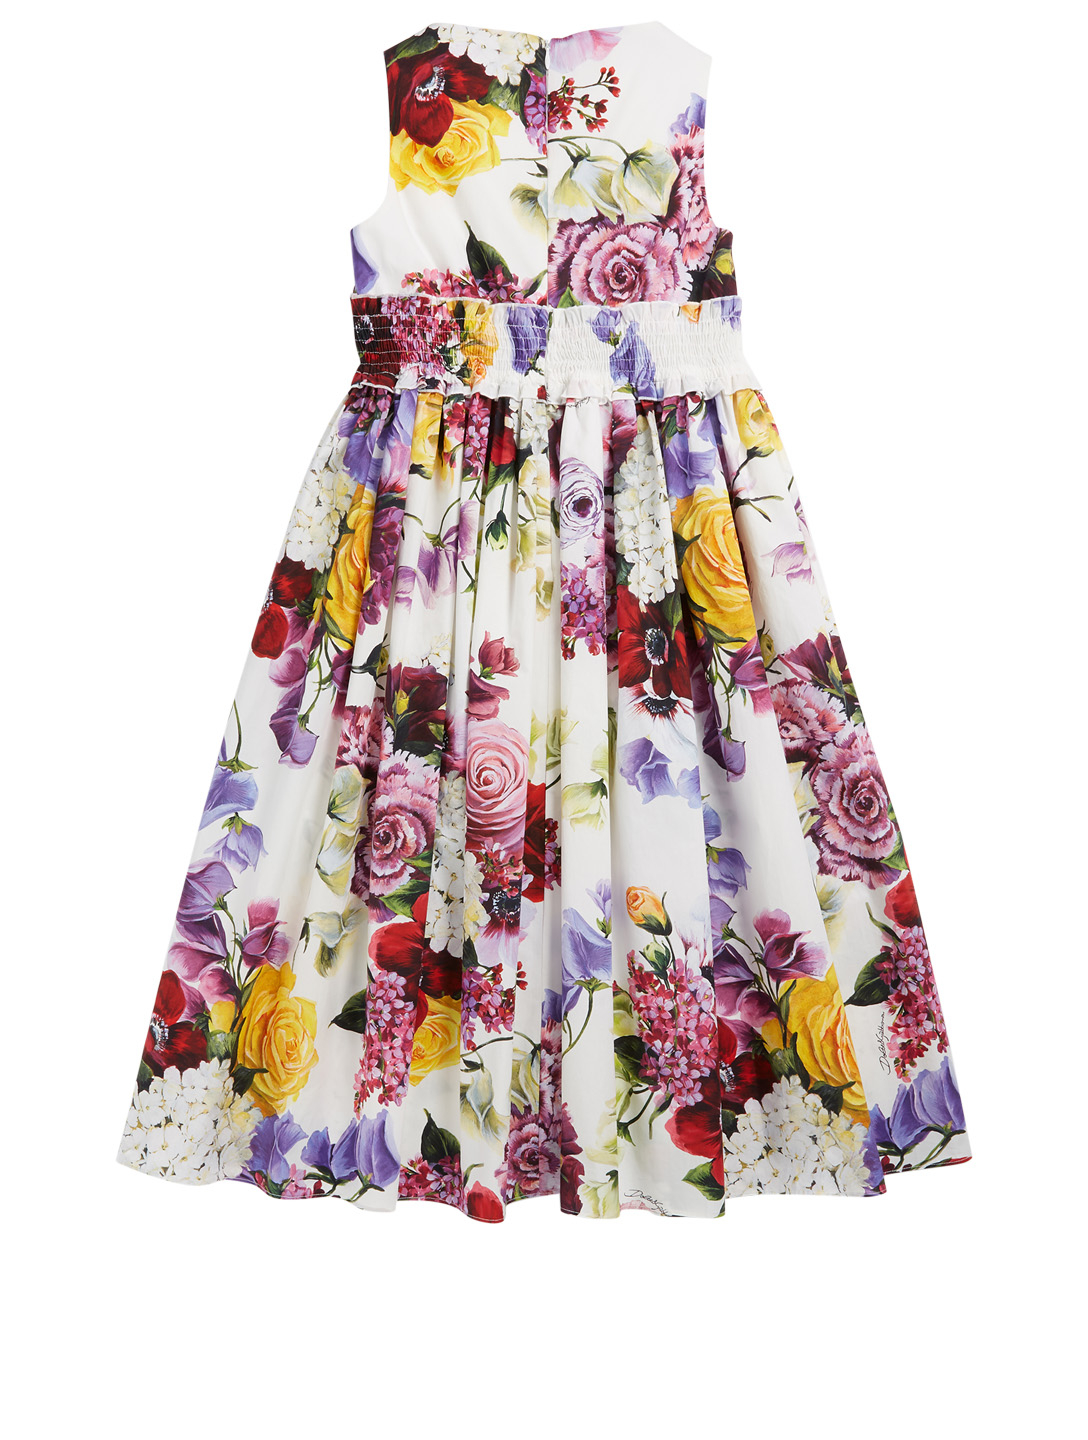 DOLCE & GABBANA Youth Dress In Floral Print Kids Multi